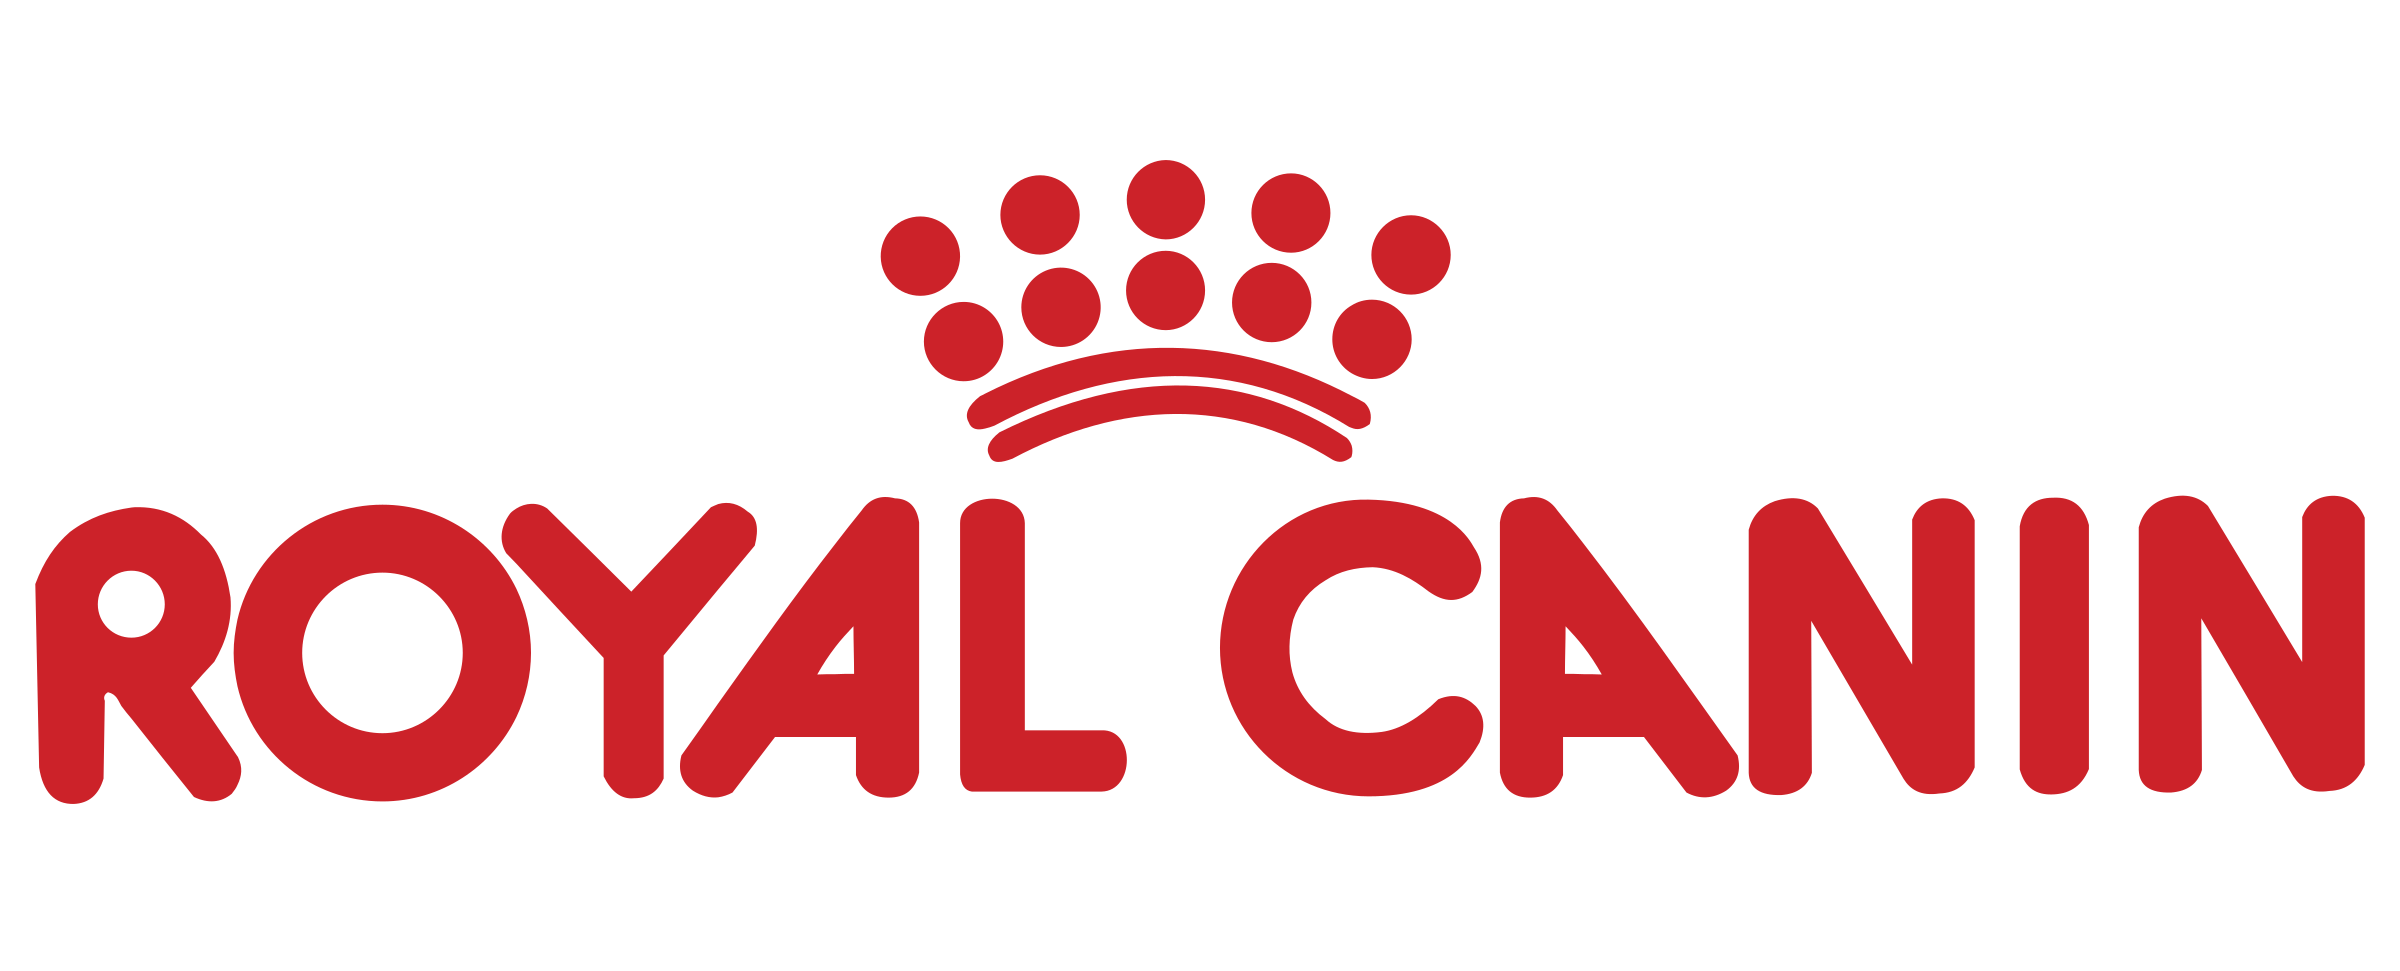 royal-canin-1-logo-png-transparent.png